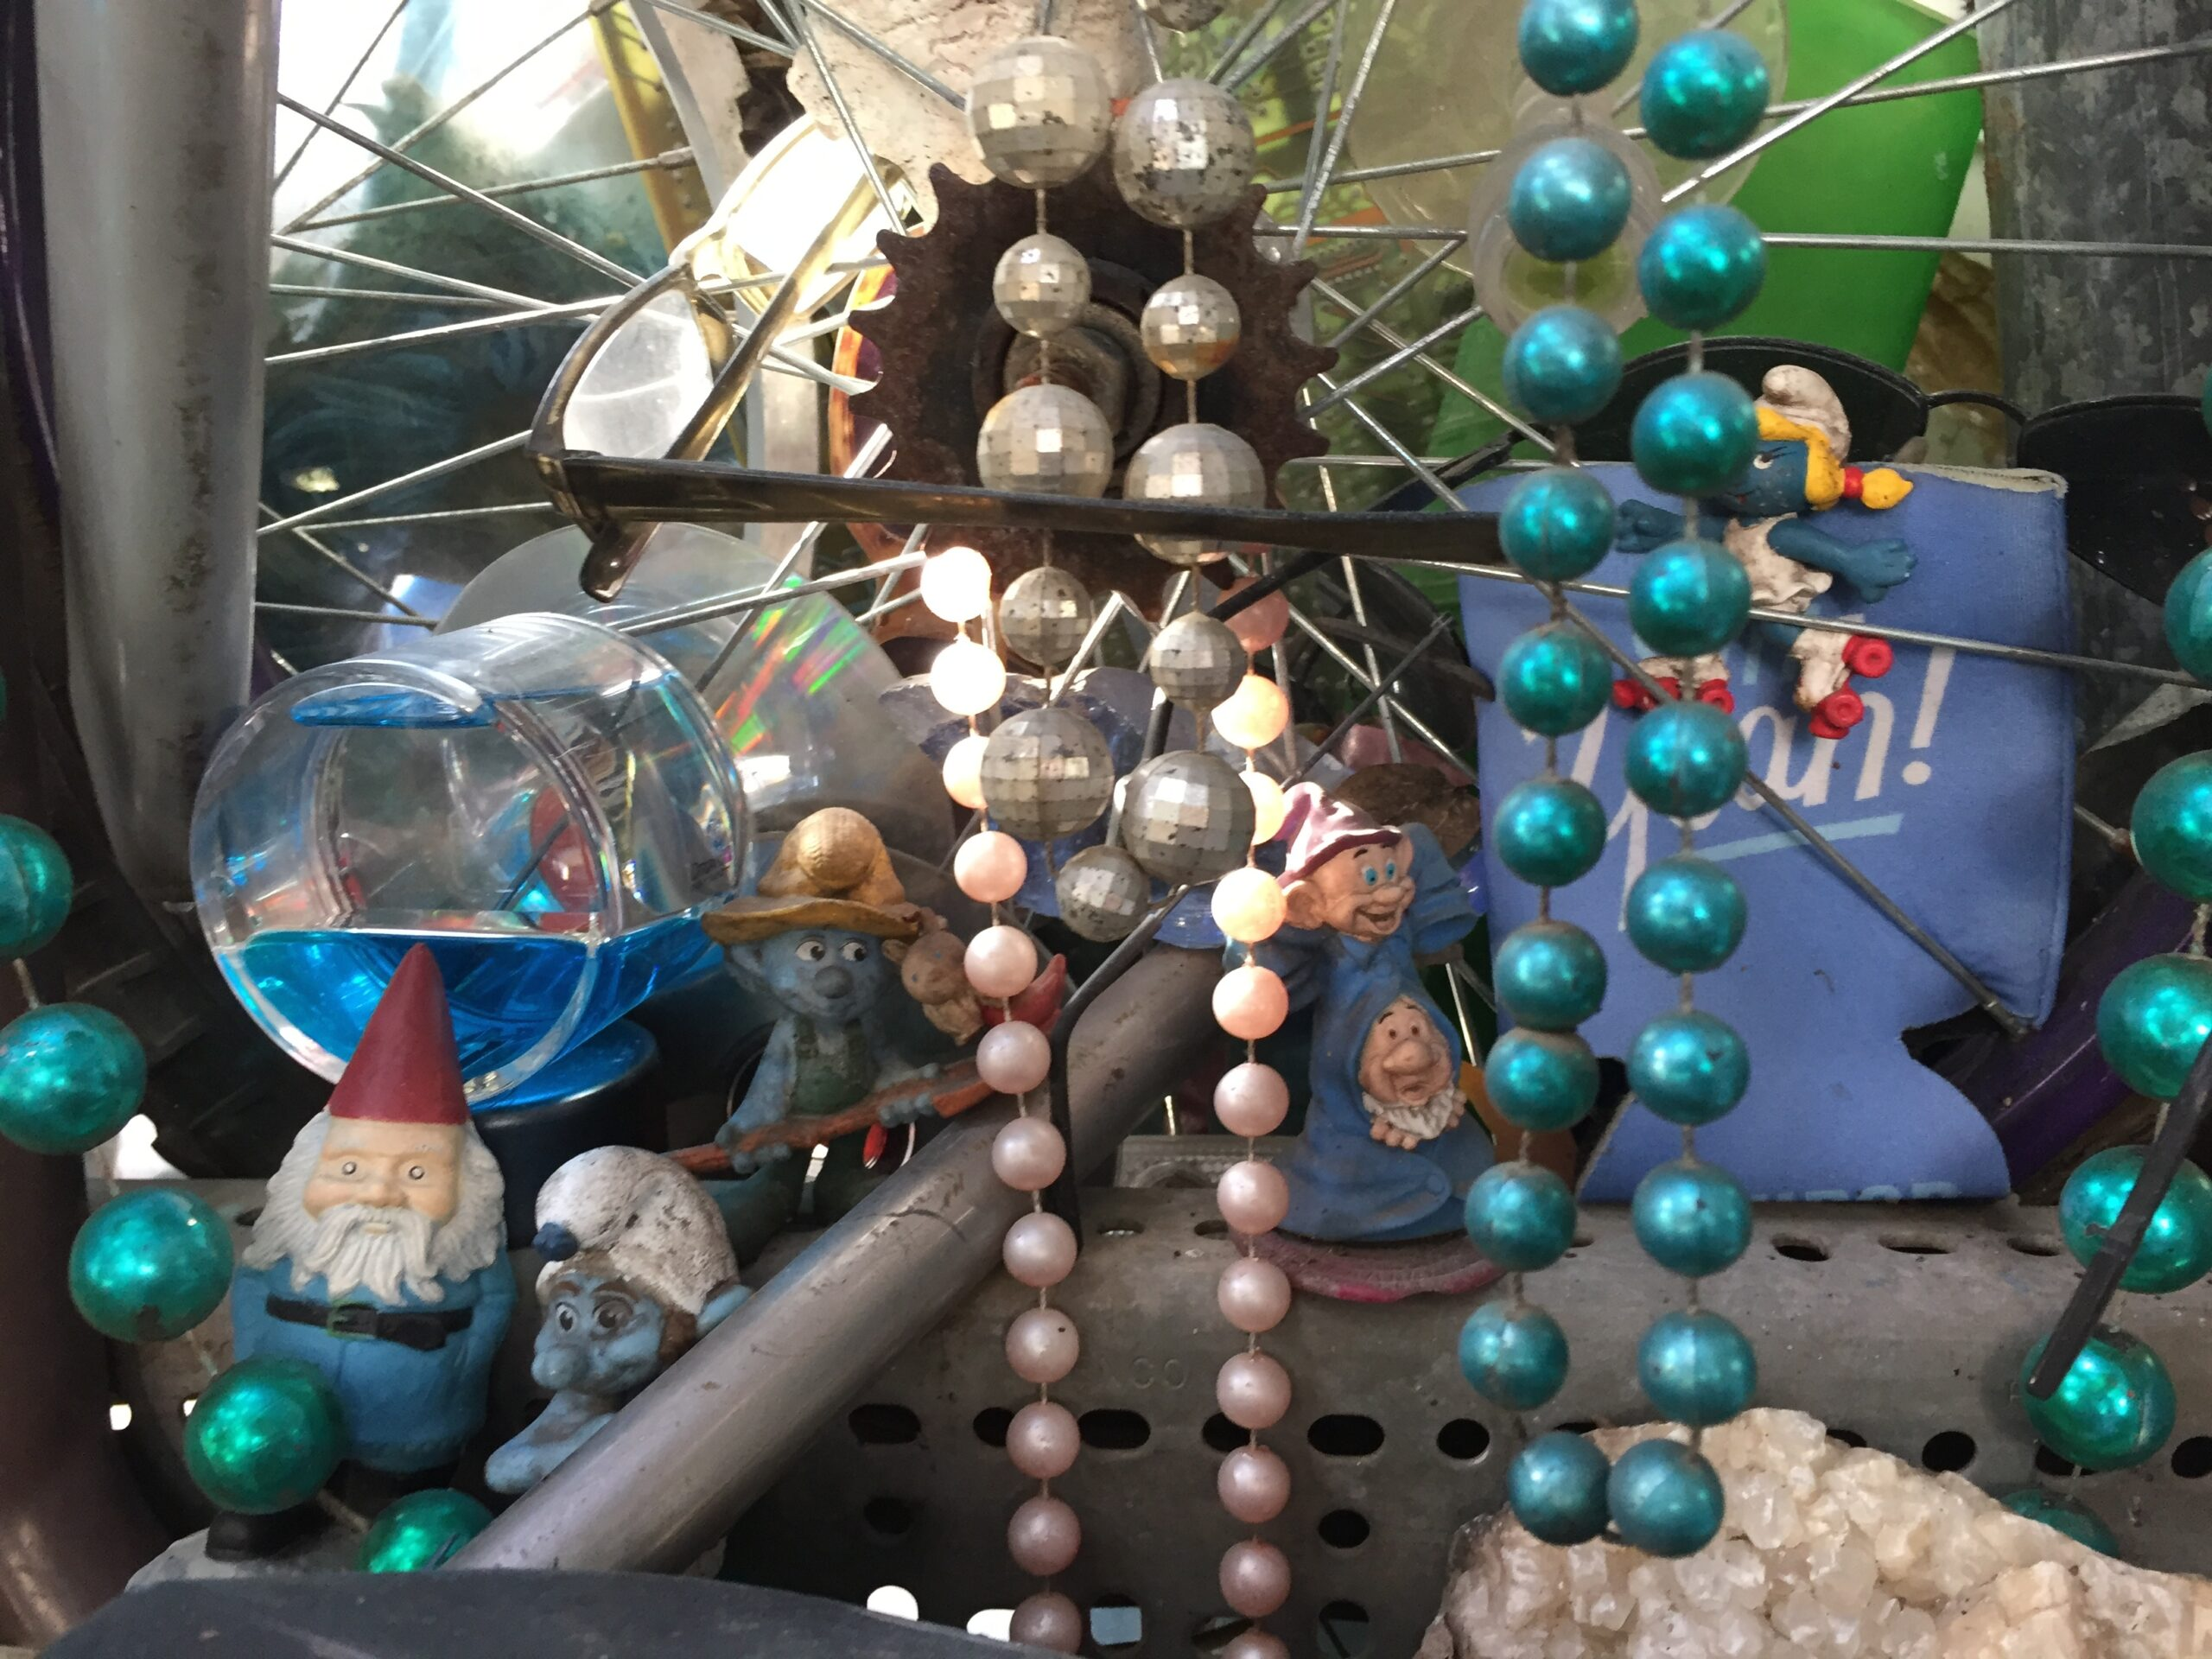 Cathedral of Junk - Just one of the fascinating little tableaux